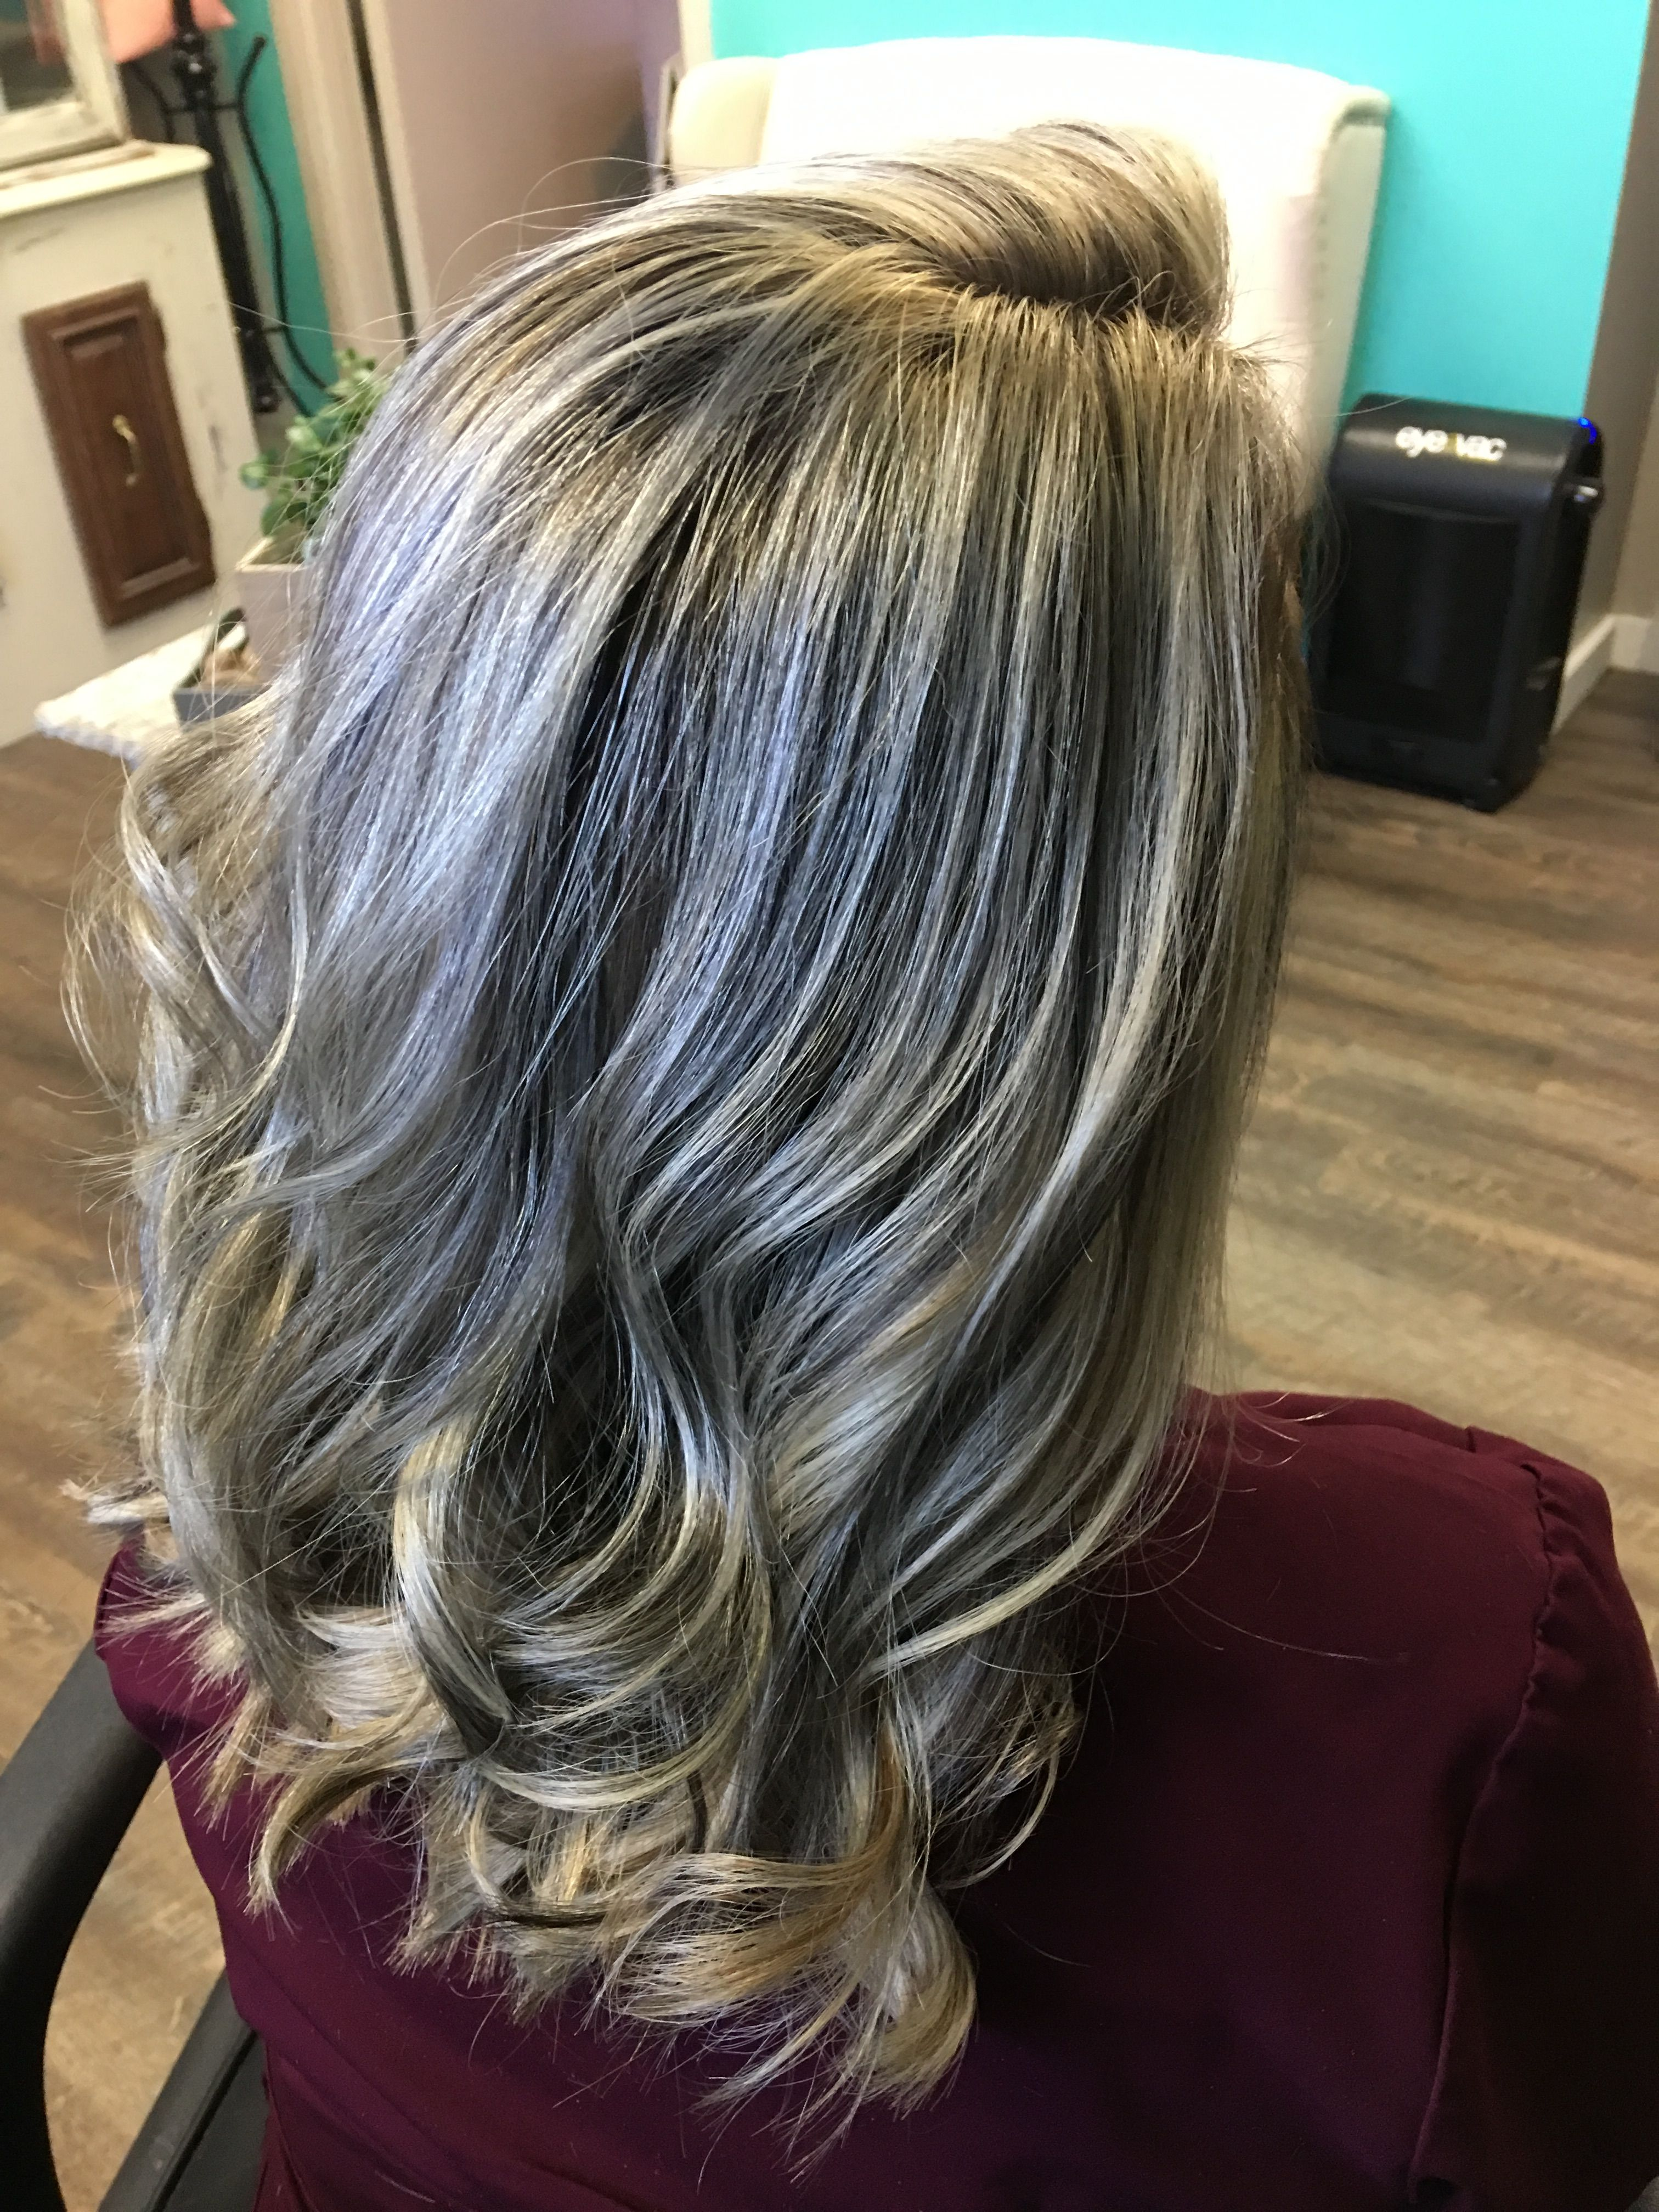 Pin By Vanessa Porter On Southern Lady Salon Long Hair Styles Hair Styles Hair